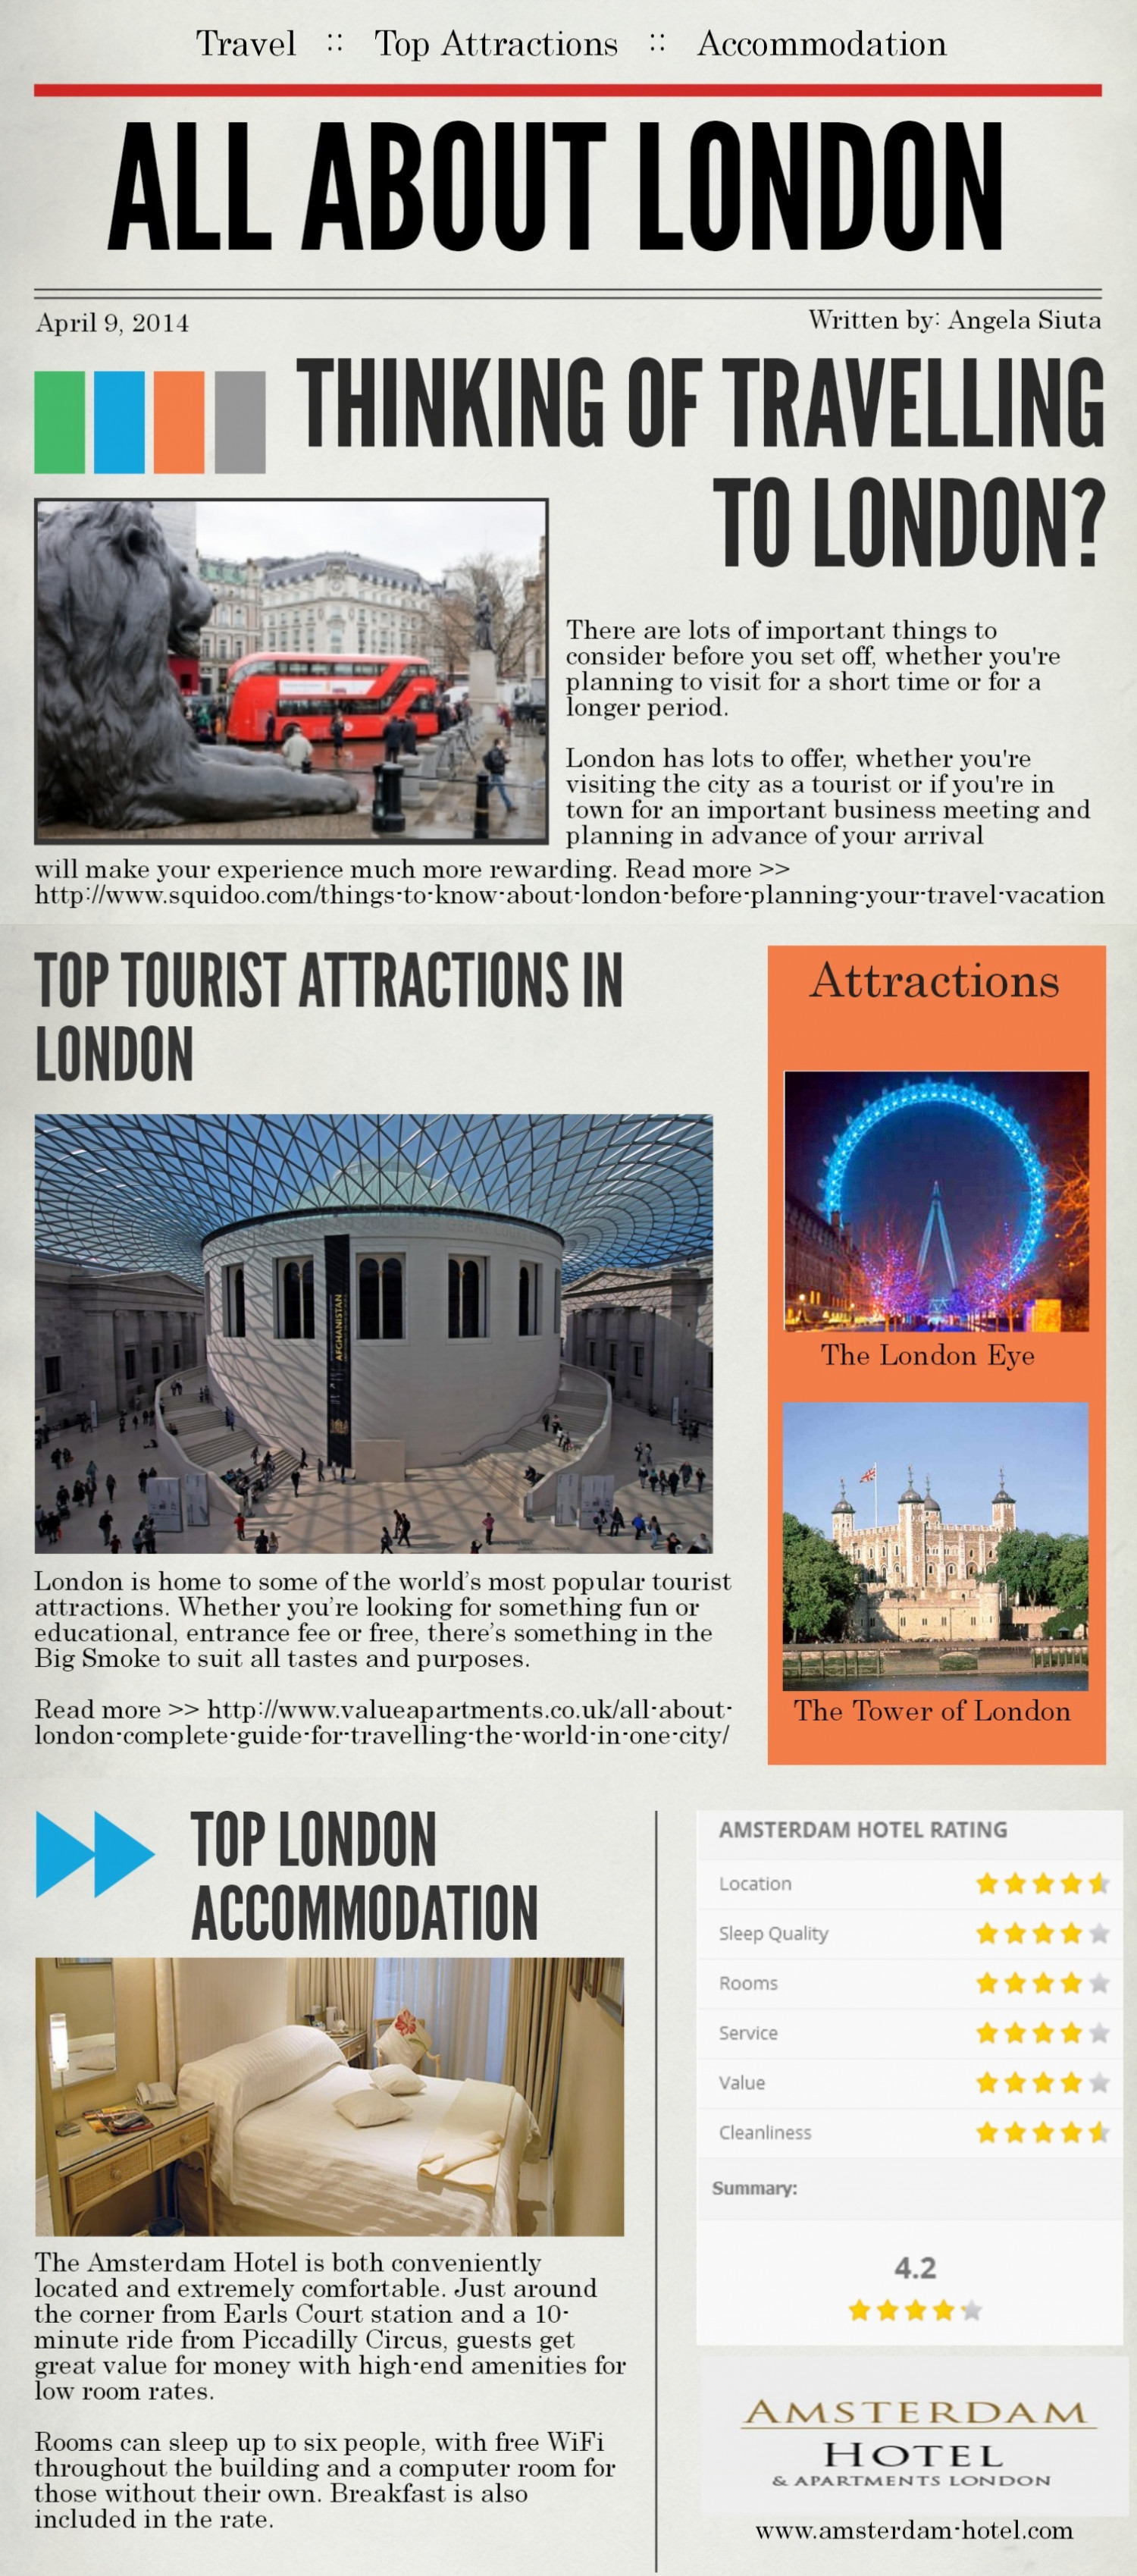 All About London Infographic